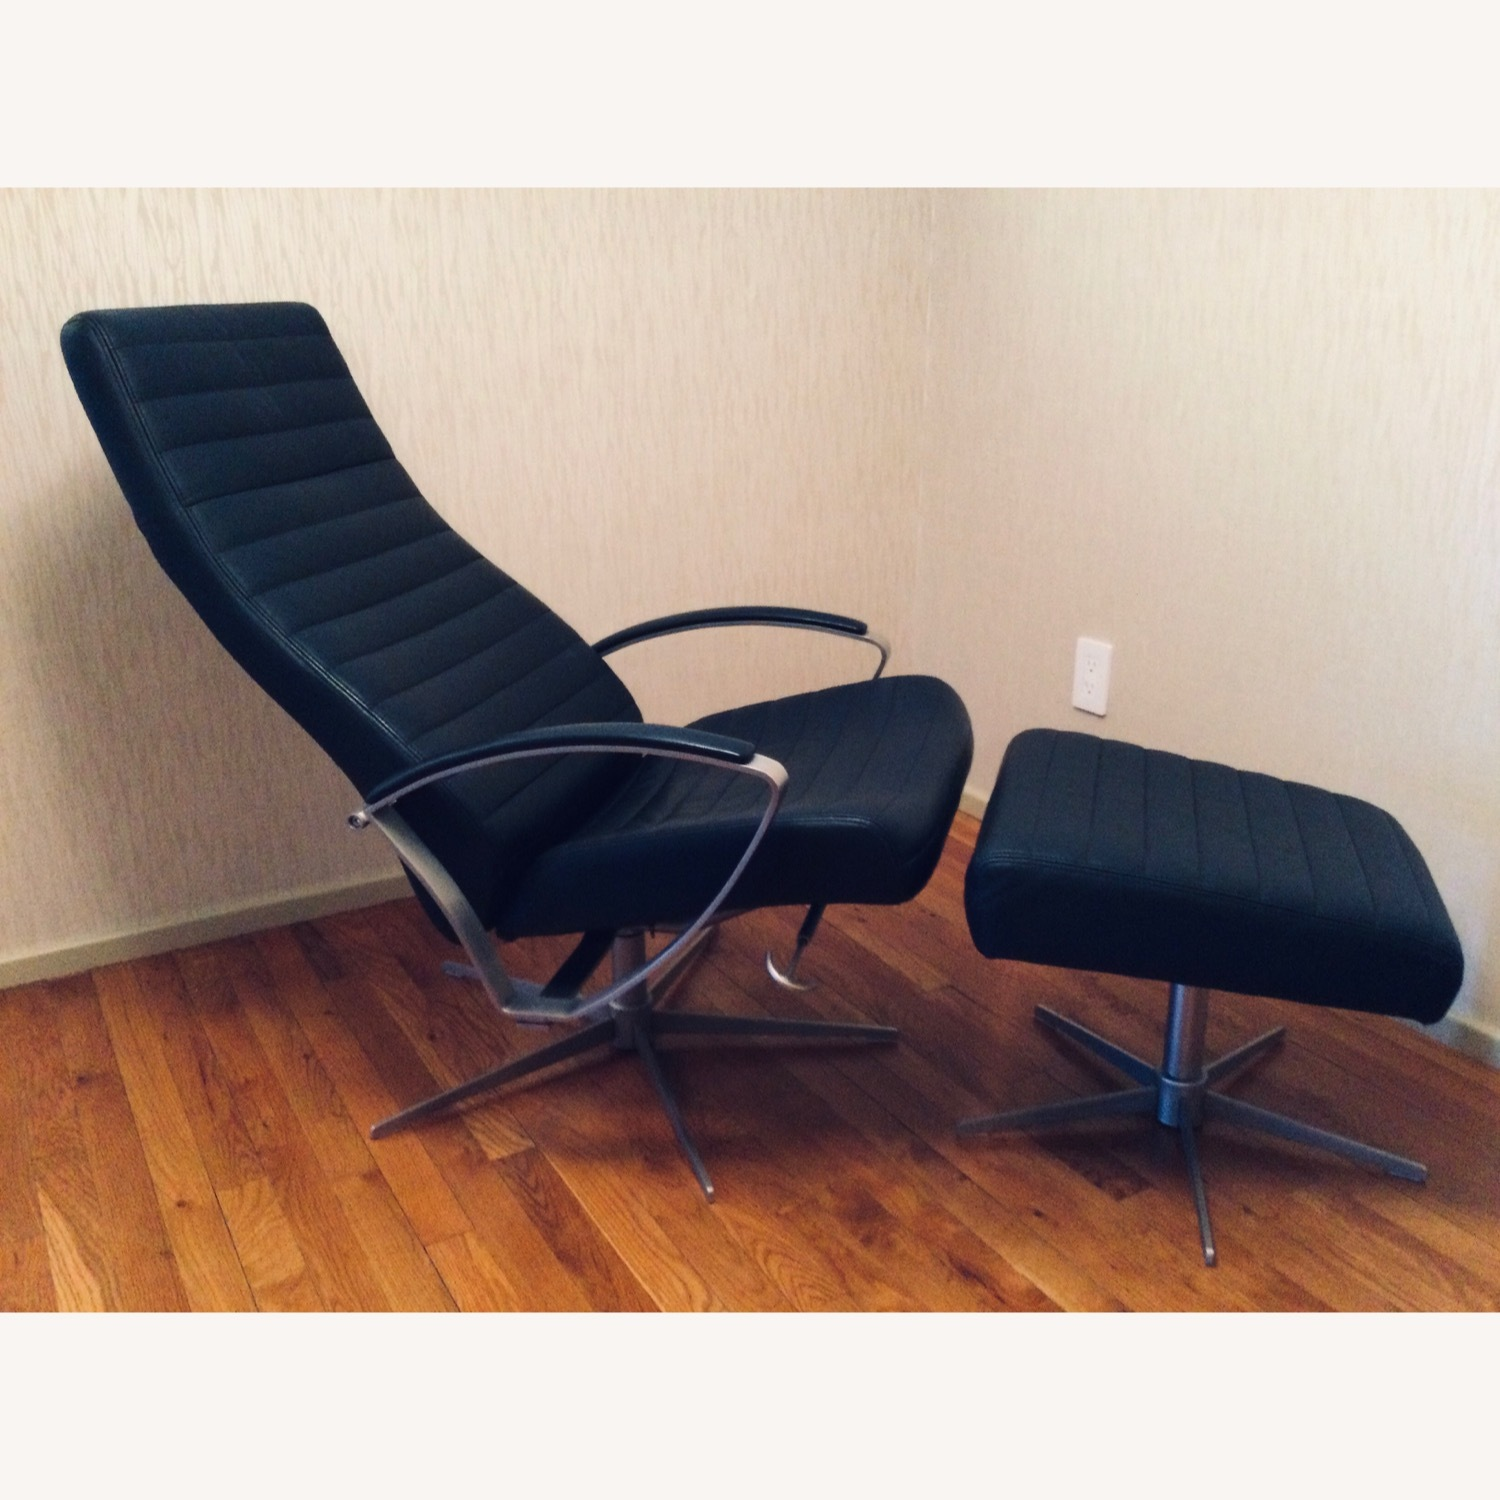 Black Recliner w/Ottoman by BoConcept - image-13